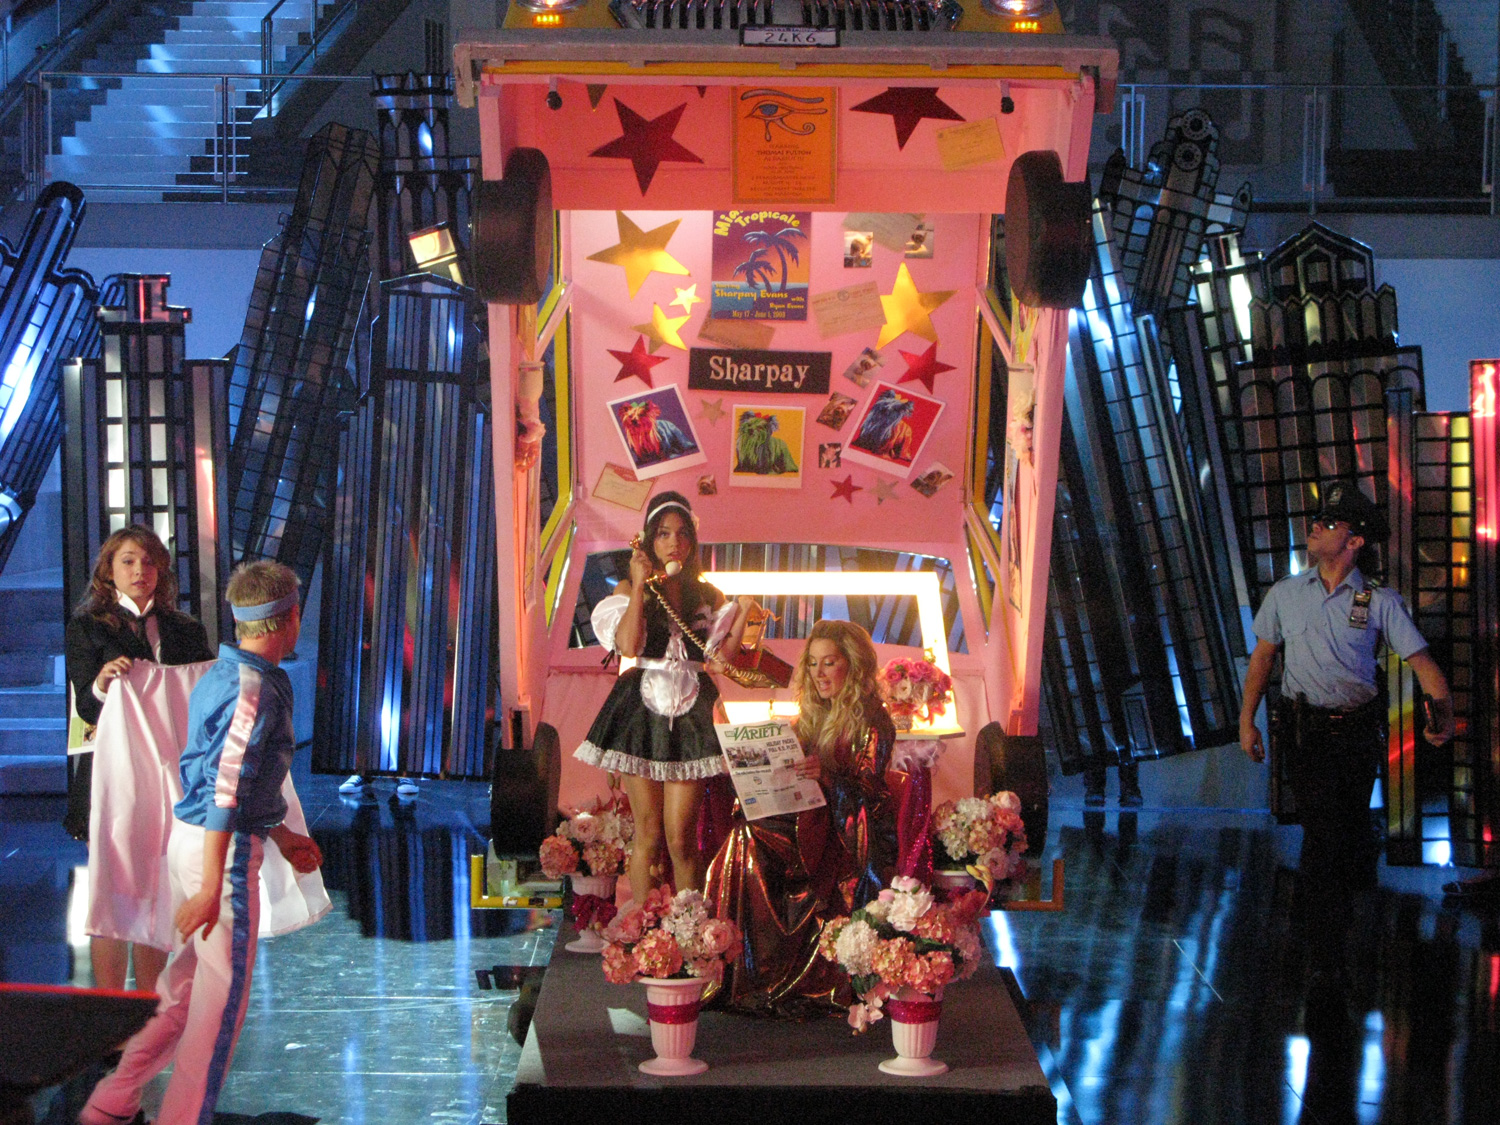 Soon the cab opens up, revealing it's not a cab at all, but Sharpay's (Ashley Tisdale) dressing room.